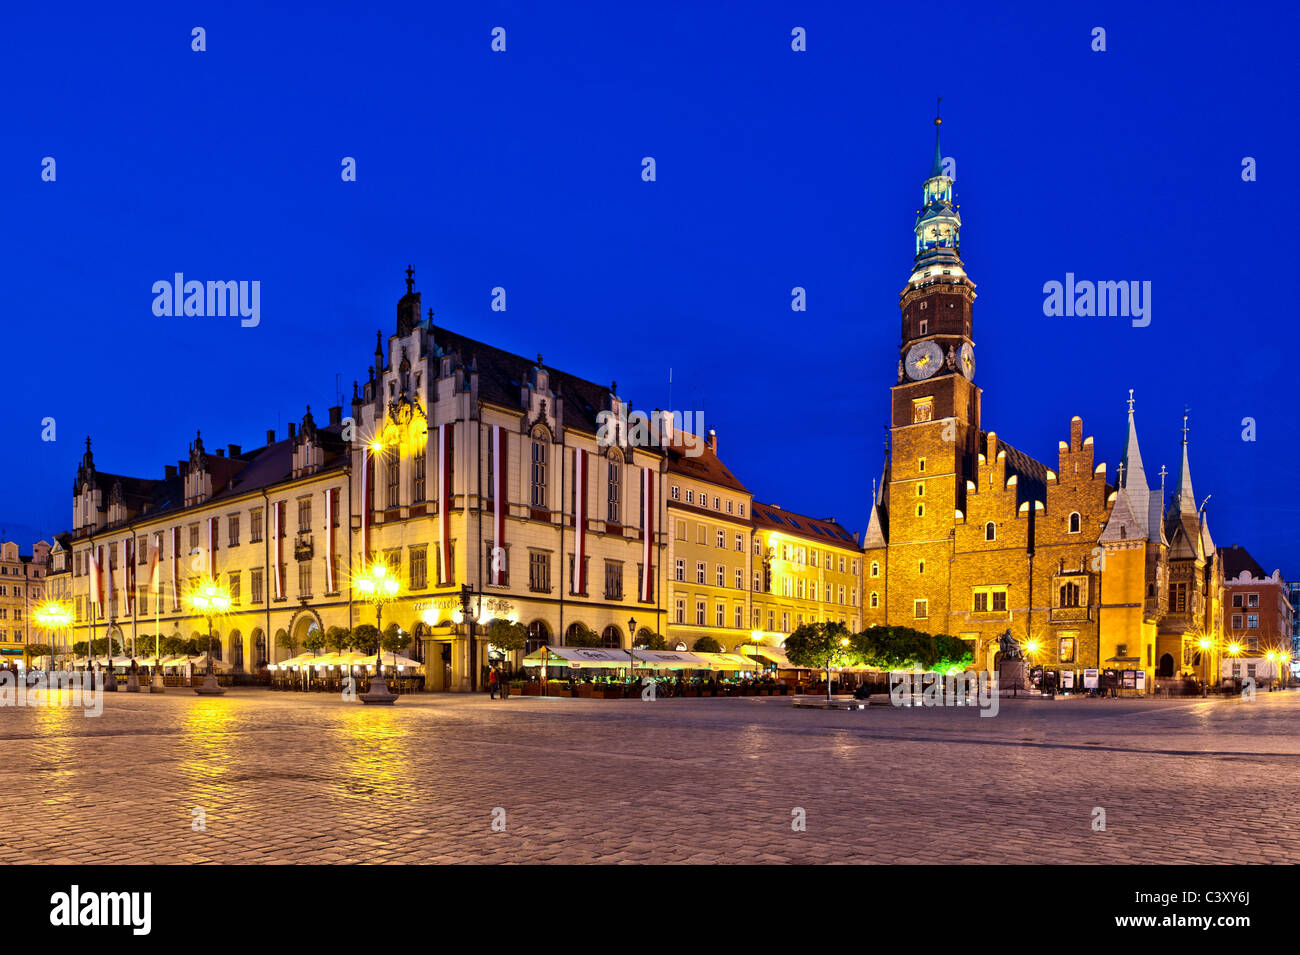 Market Square in historic Old Town at dusk, Wroclaw, Poland - Stock Image